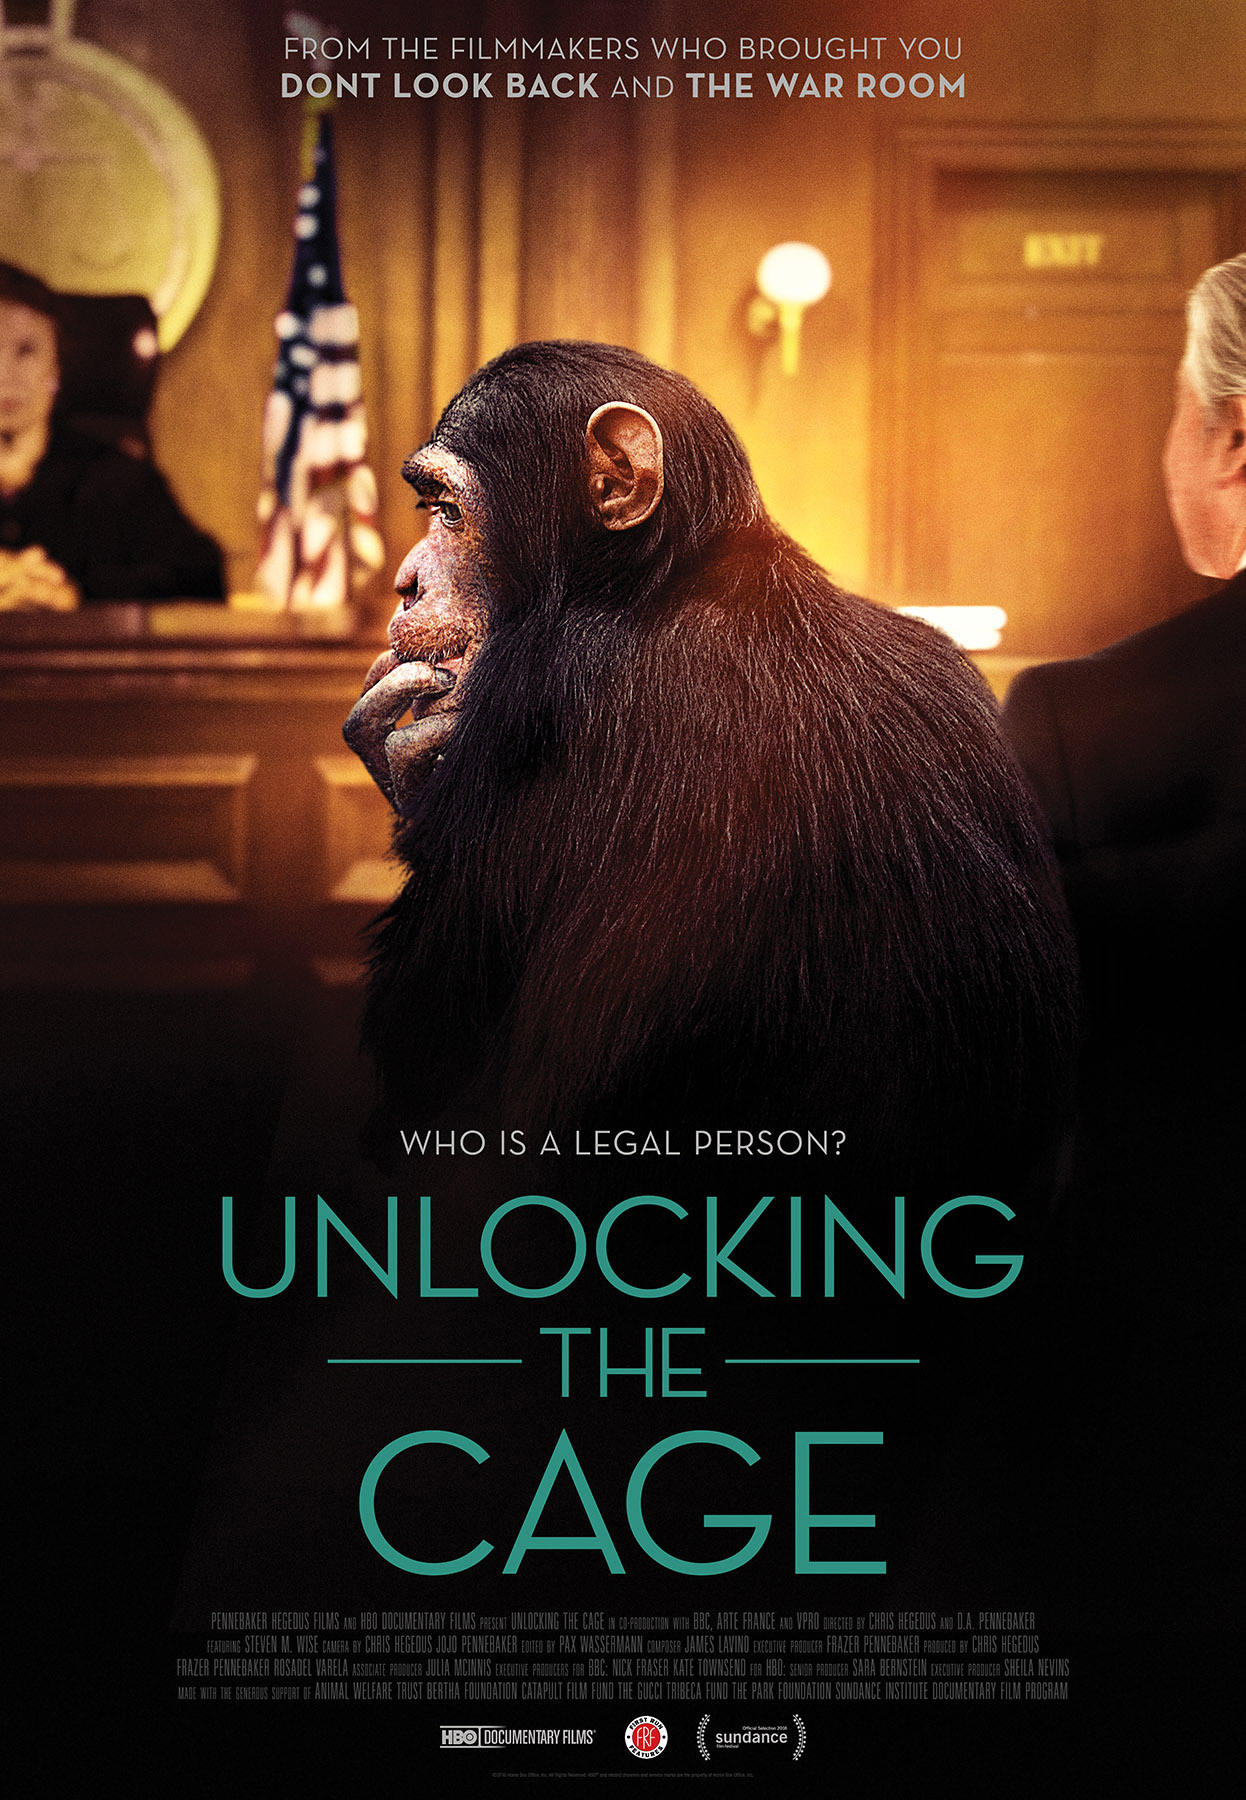 UNLOCKING THE CAGE MOVIE REVIEW